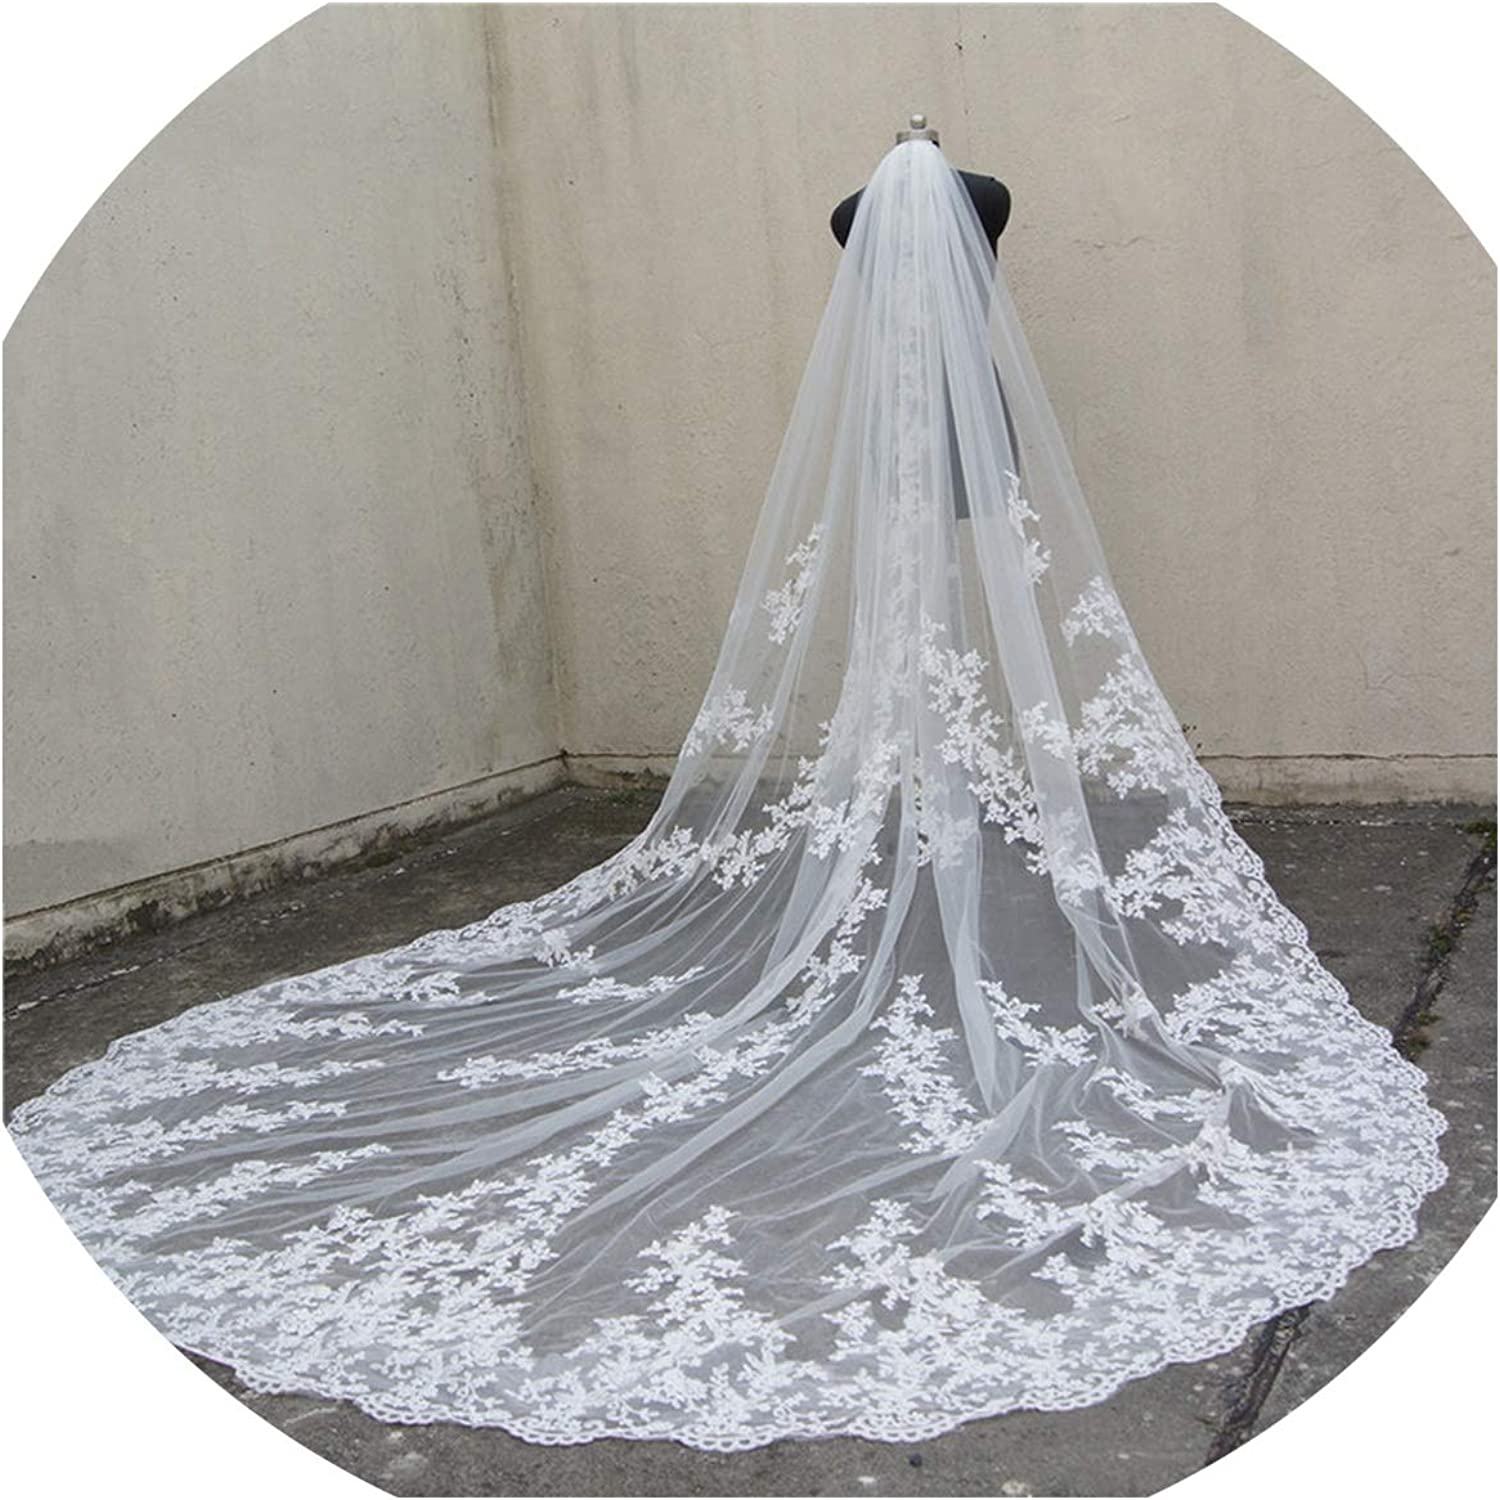 118  Long, 110  Wide 1 Layer Lace Applique Wedding Veil Cathedral Length Bridal Veil with Comb,WHITE,300cm